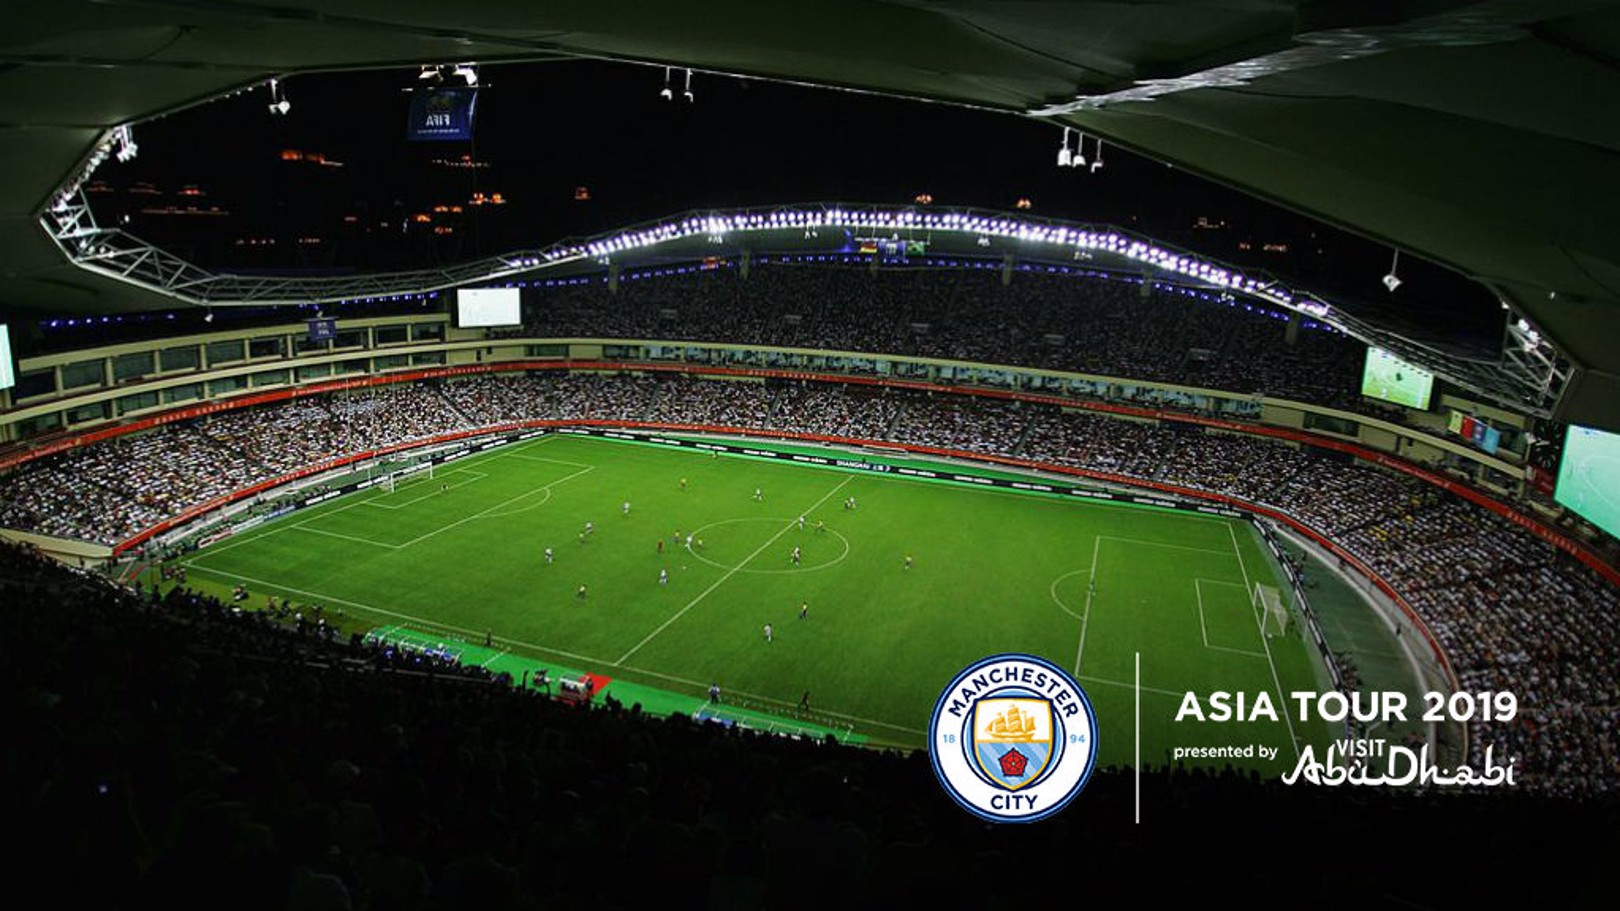 WAITING GAME: The Houngkou Stadium in Shanghai will play host to one of City's Asia 2019 Tour matches